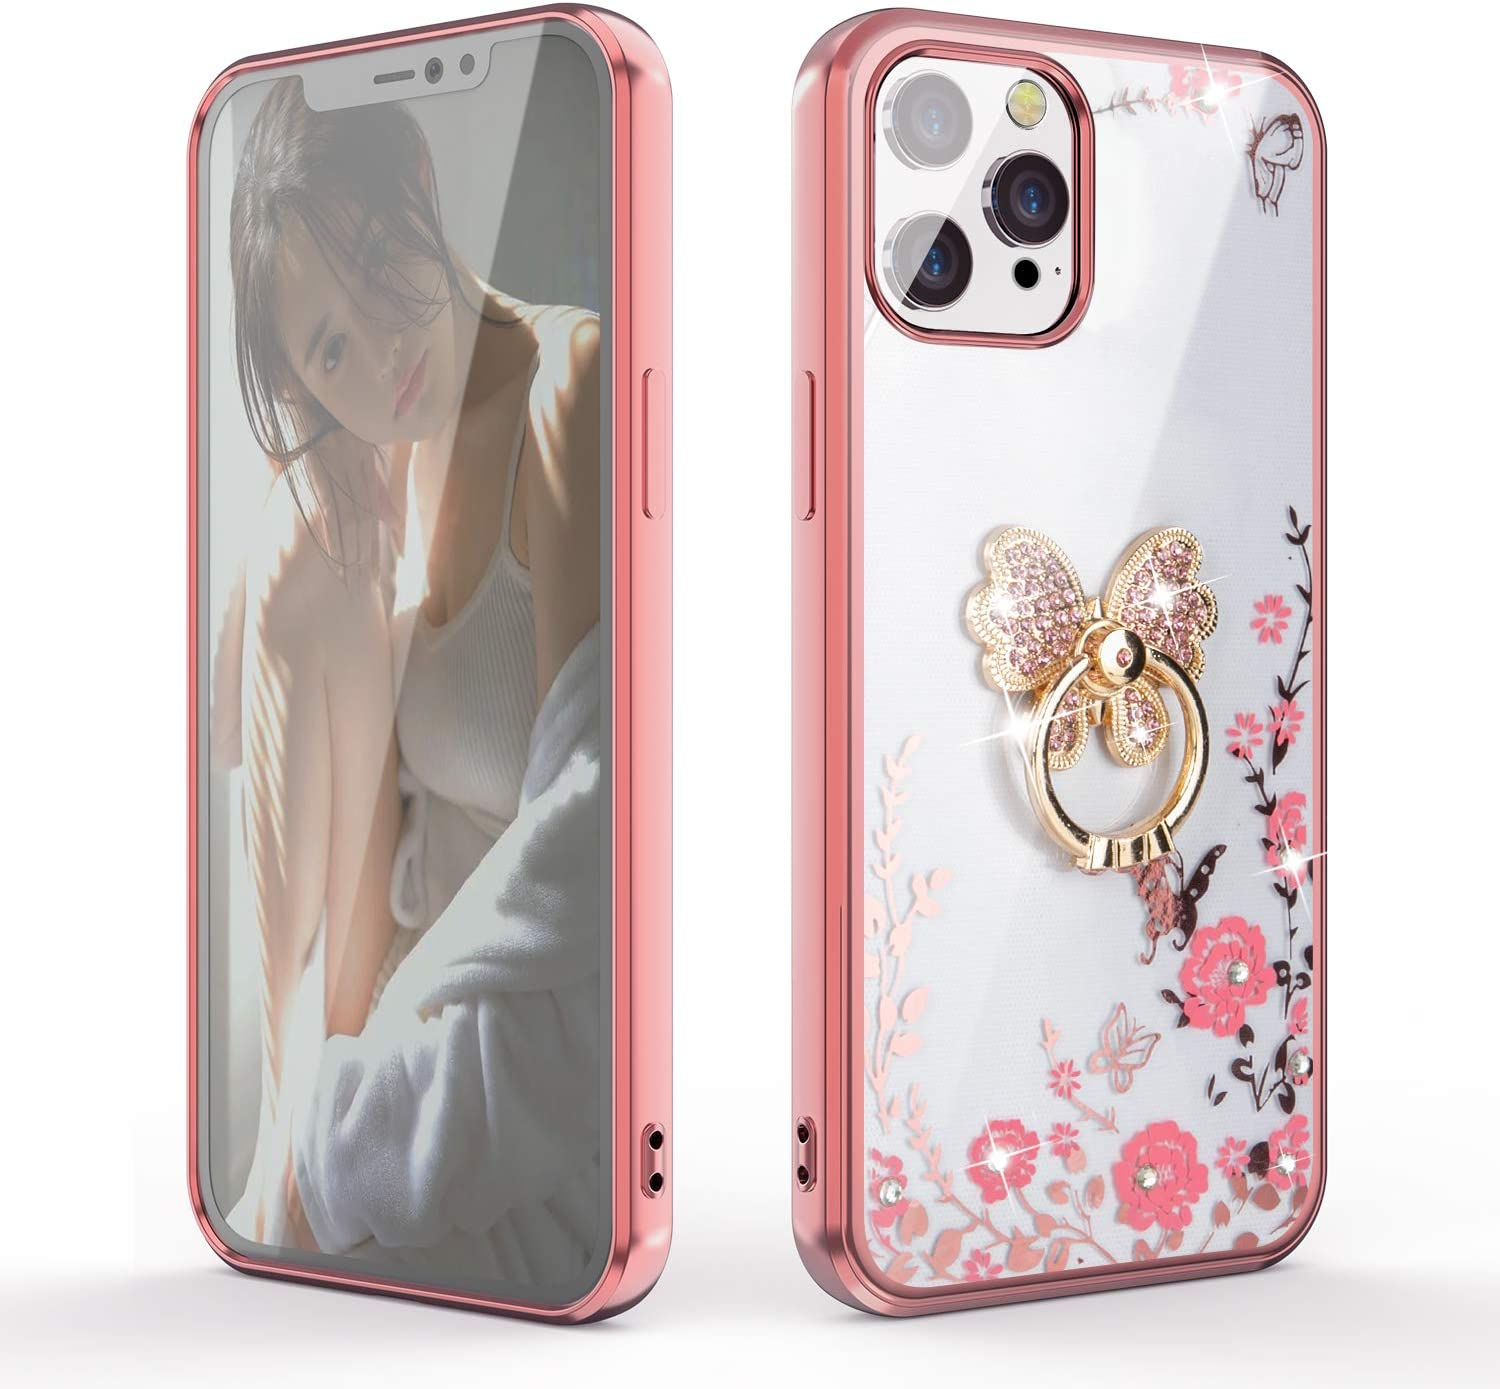 for iPhone 12 Pro Max Case,Glitter Diamond Secret Garden Floral Butterfly Clear Back Soft TPU Case with Bling Shiny Rhinestone Ring Grip Holder Stand for iPhone 12 Pro Max,Rose Gold/Butterfly Bracket